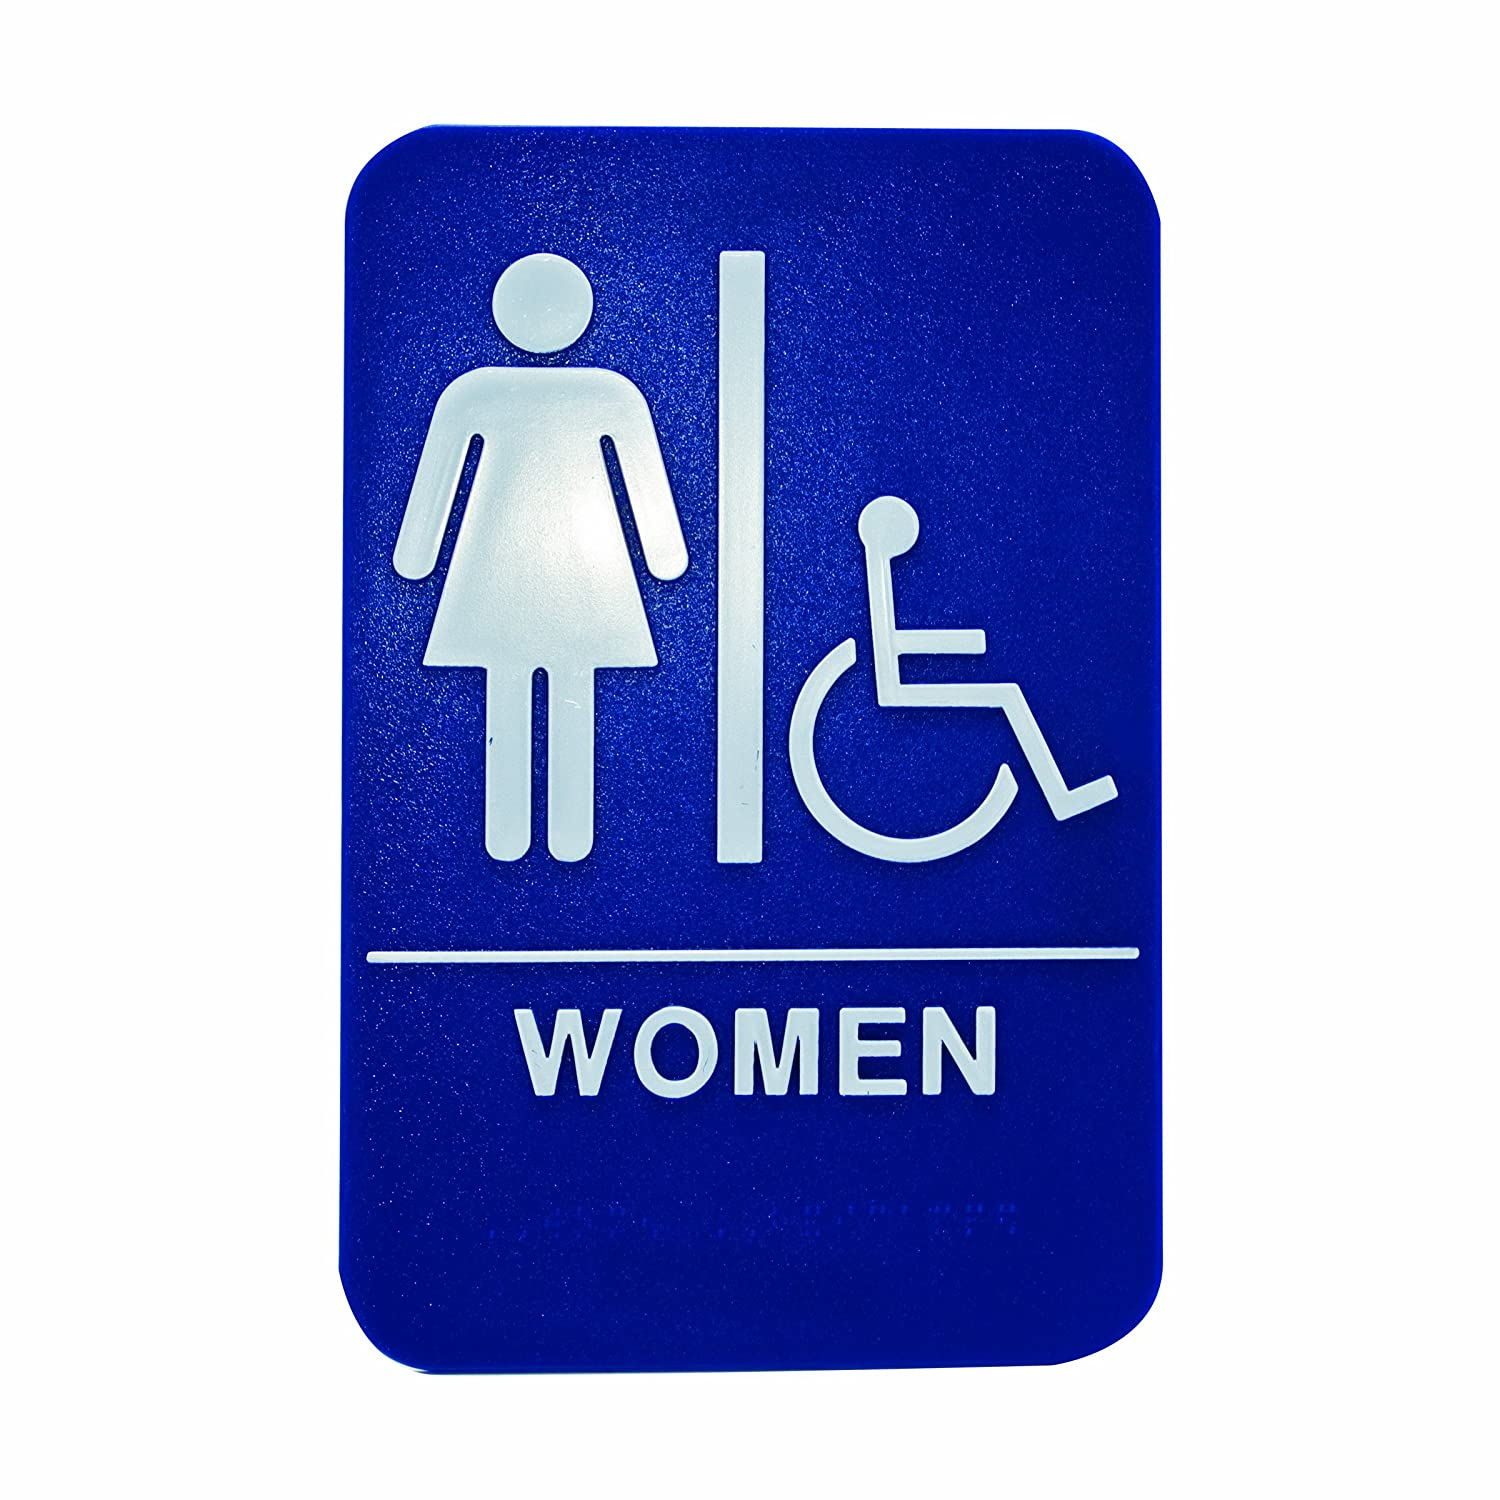 galicia category at women img bathroom sign a s naptime bar toilet yasmine with restroom in signs